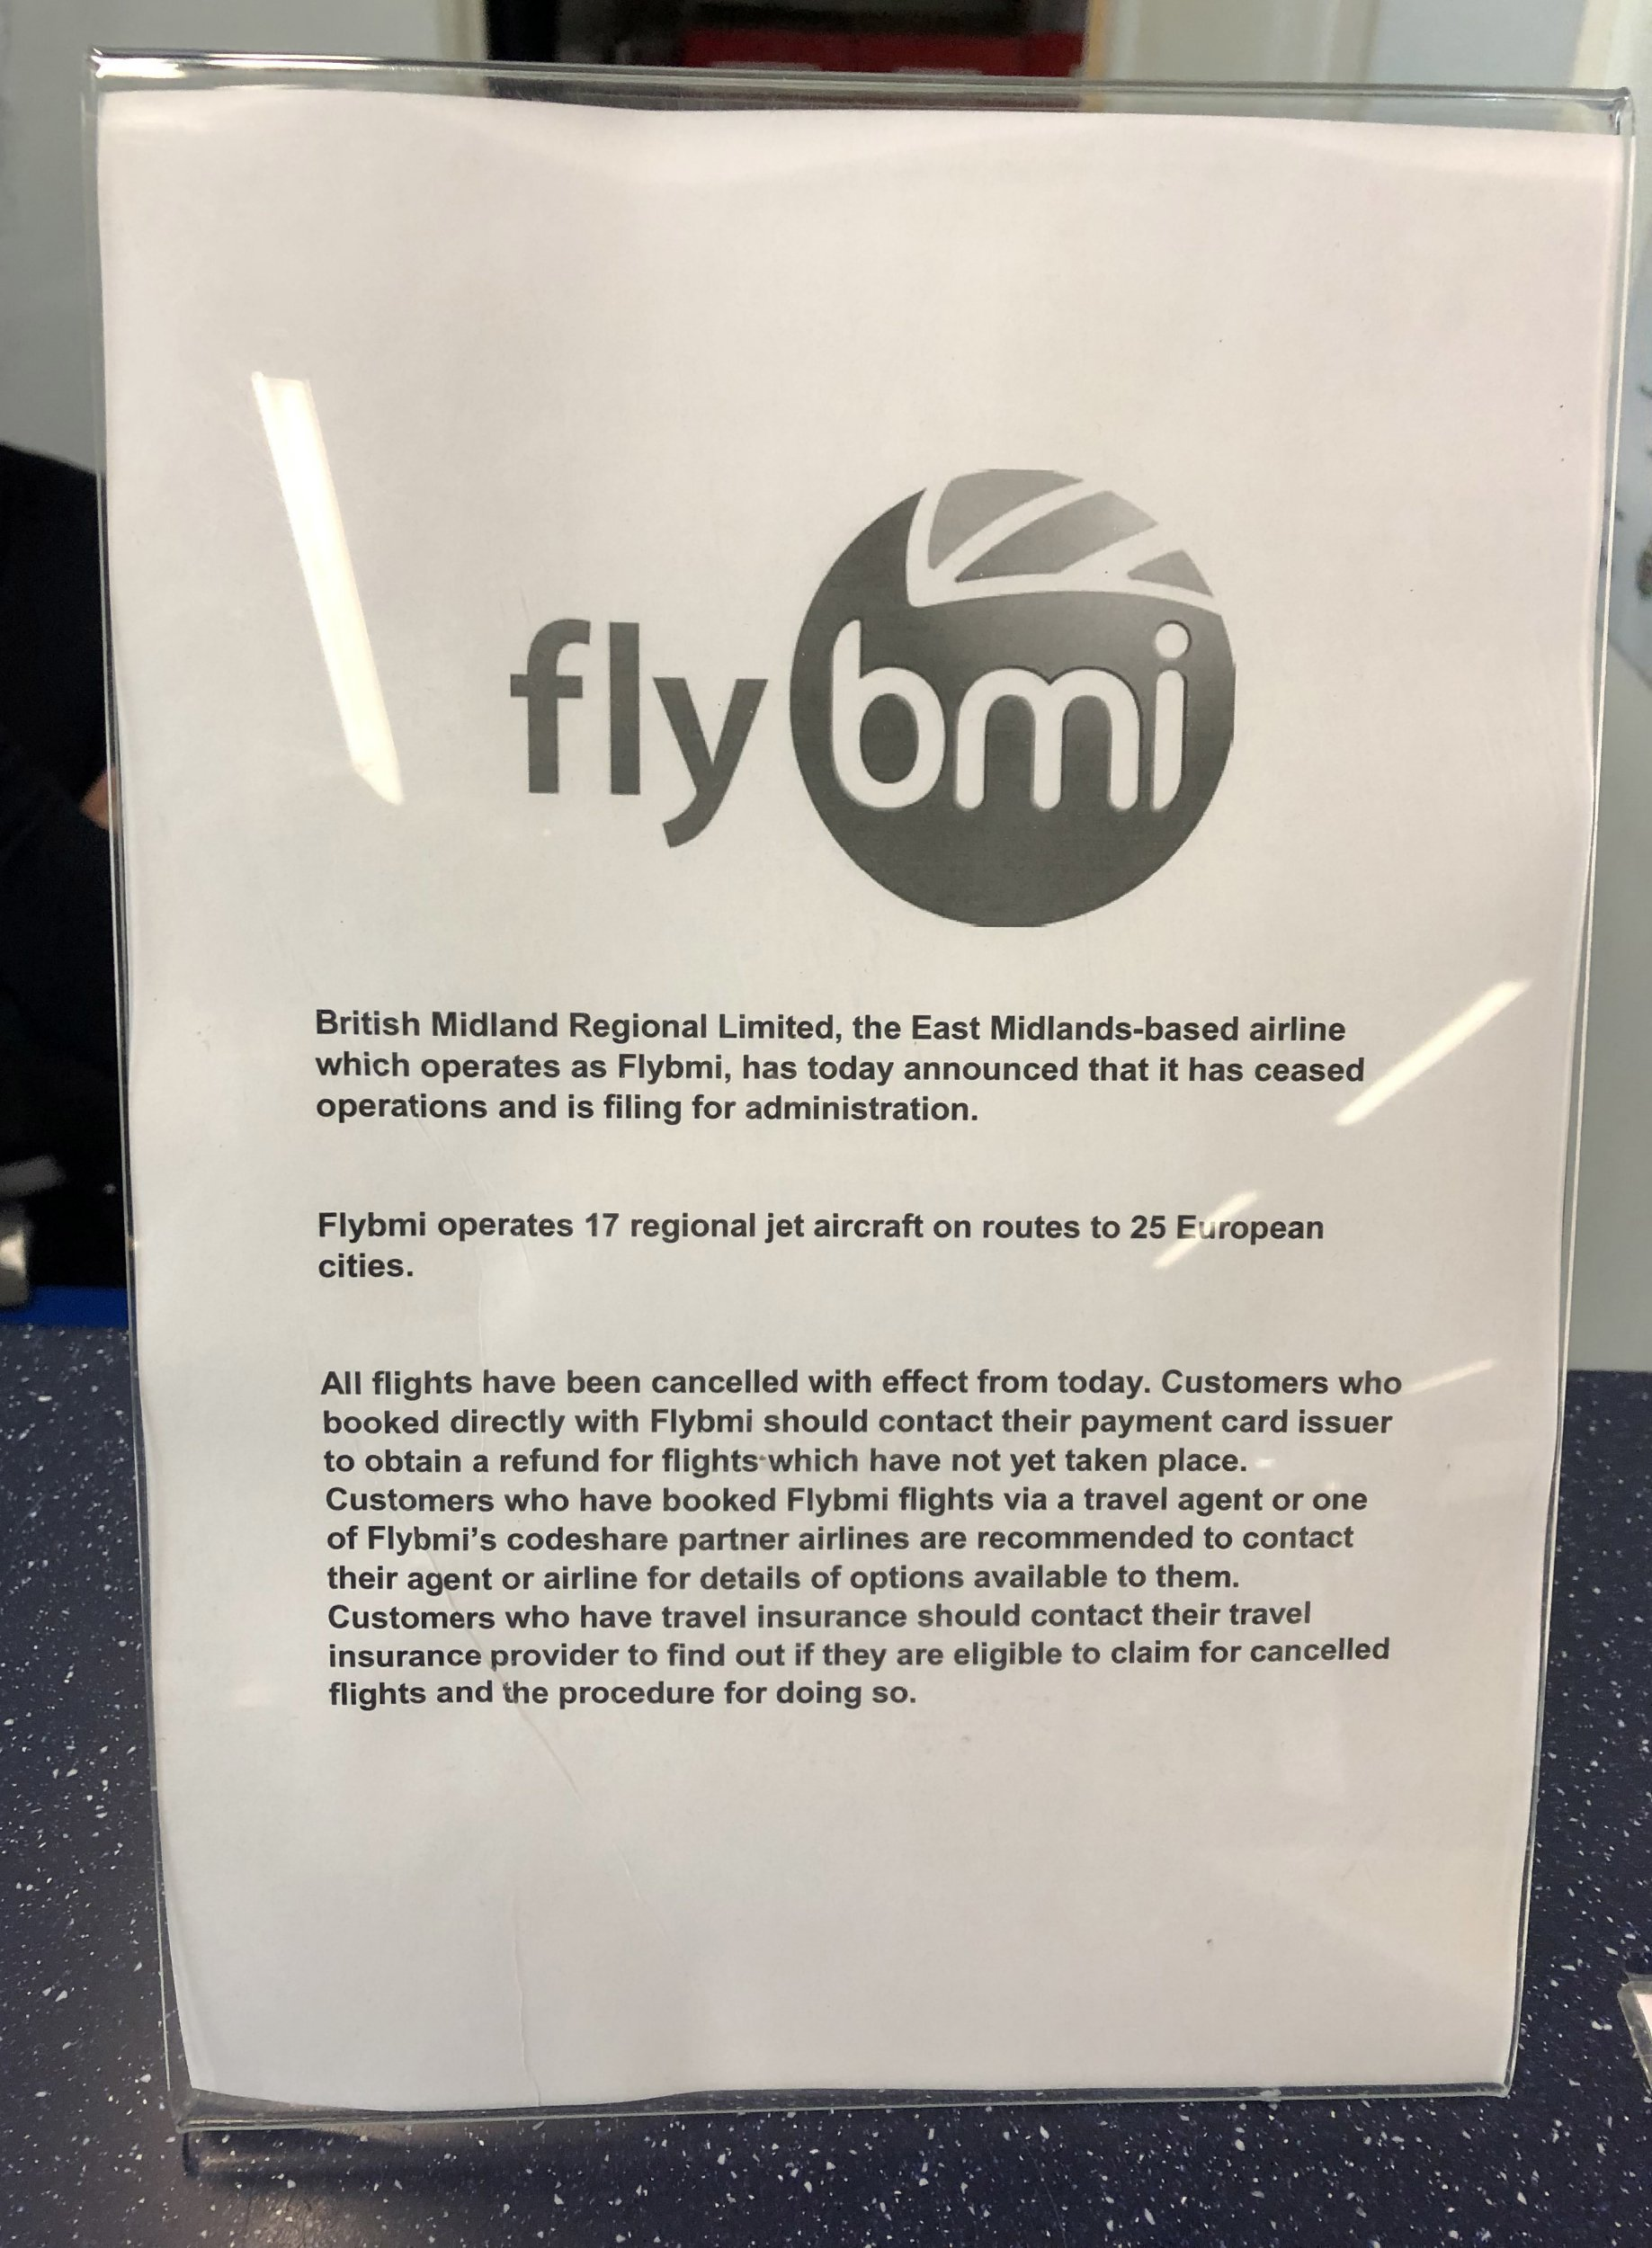 A notice at Bristol Airport informing passengers that flybmi flights have been cancelled following the collapse of the airline. PRESS ASSOCIATION Photo. Picture date: Sunday February 17, 2019. British Midland Regional Limited, which operated as flybmi, announced on Saturday evening that it was filing for administration. See PA story AIR FlyBMI. Photo credit should read: PA Wire